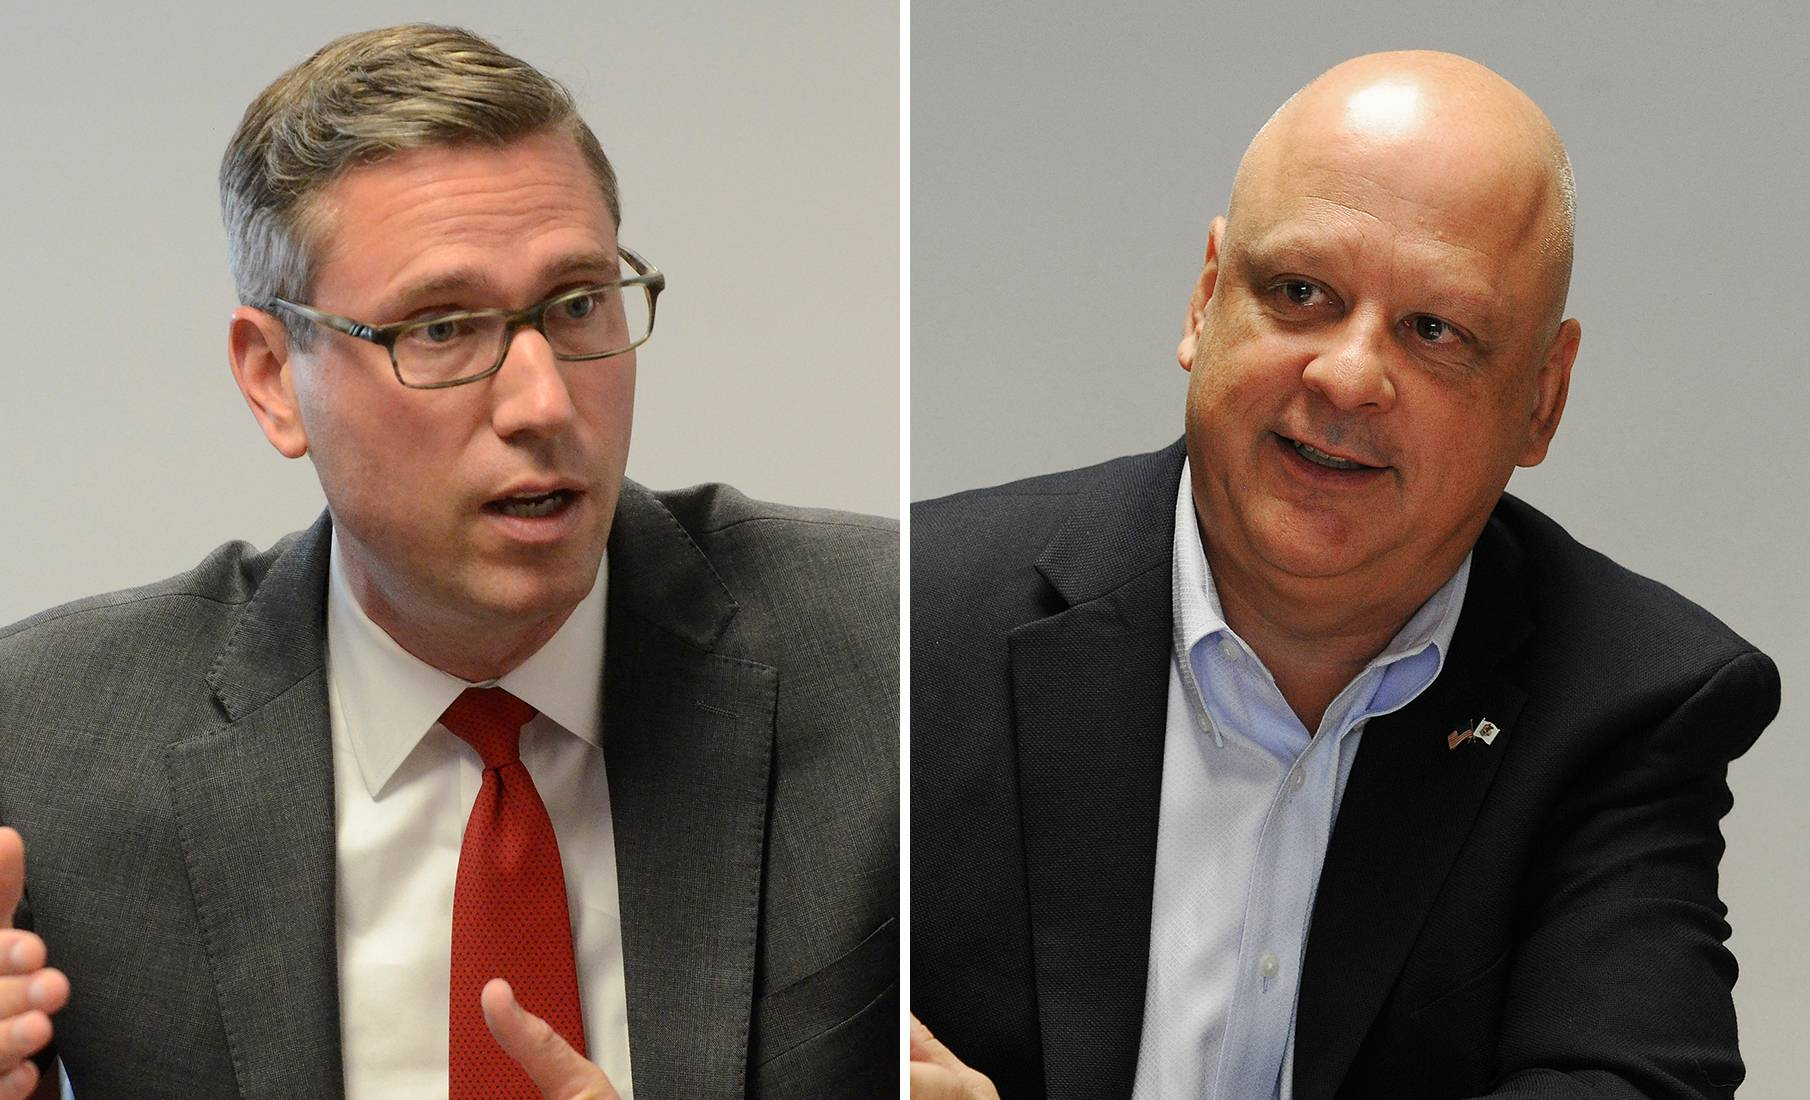 Candidates differ on state treasurer's mission